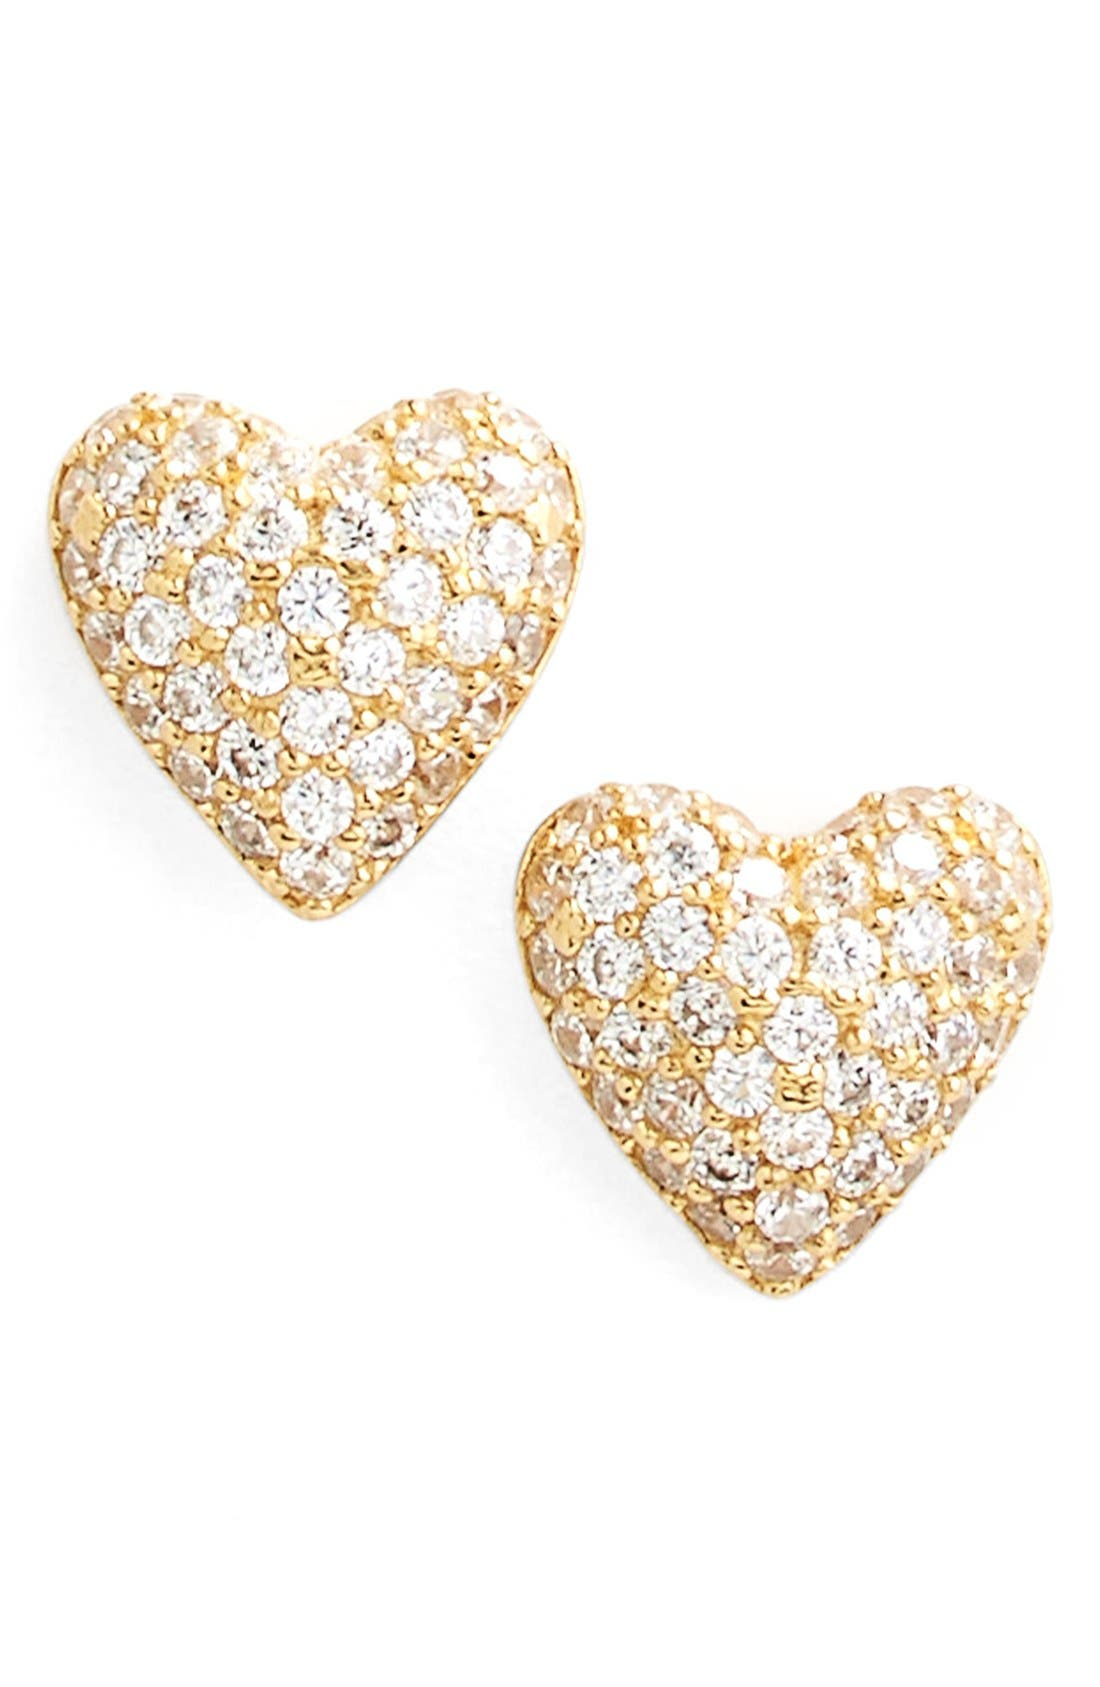 Main Image - Nadri 'Valentine's Day' Heart Stud Earrings